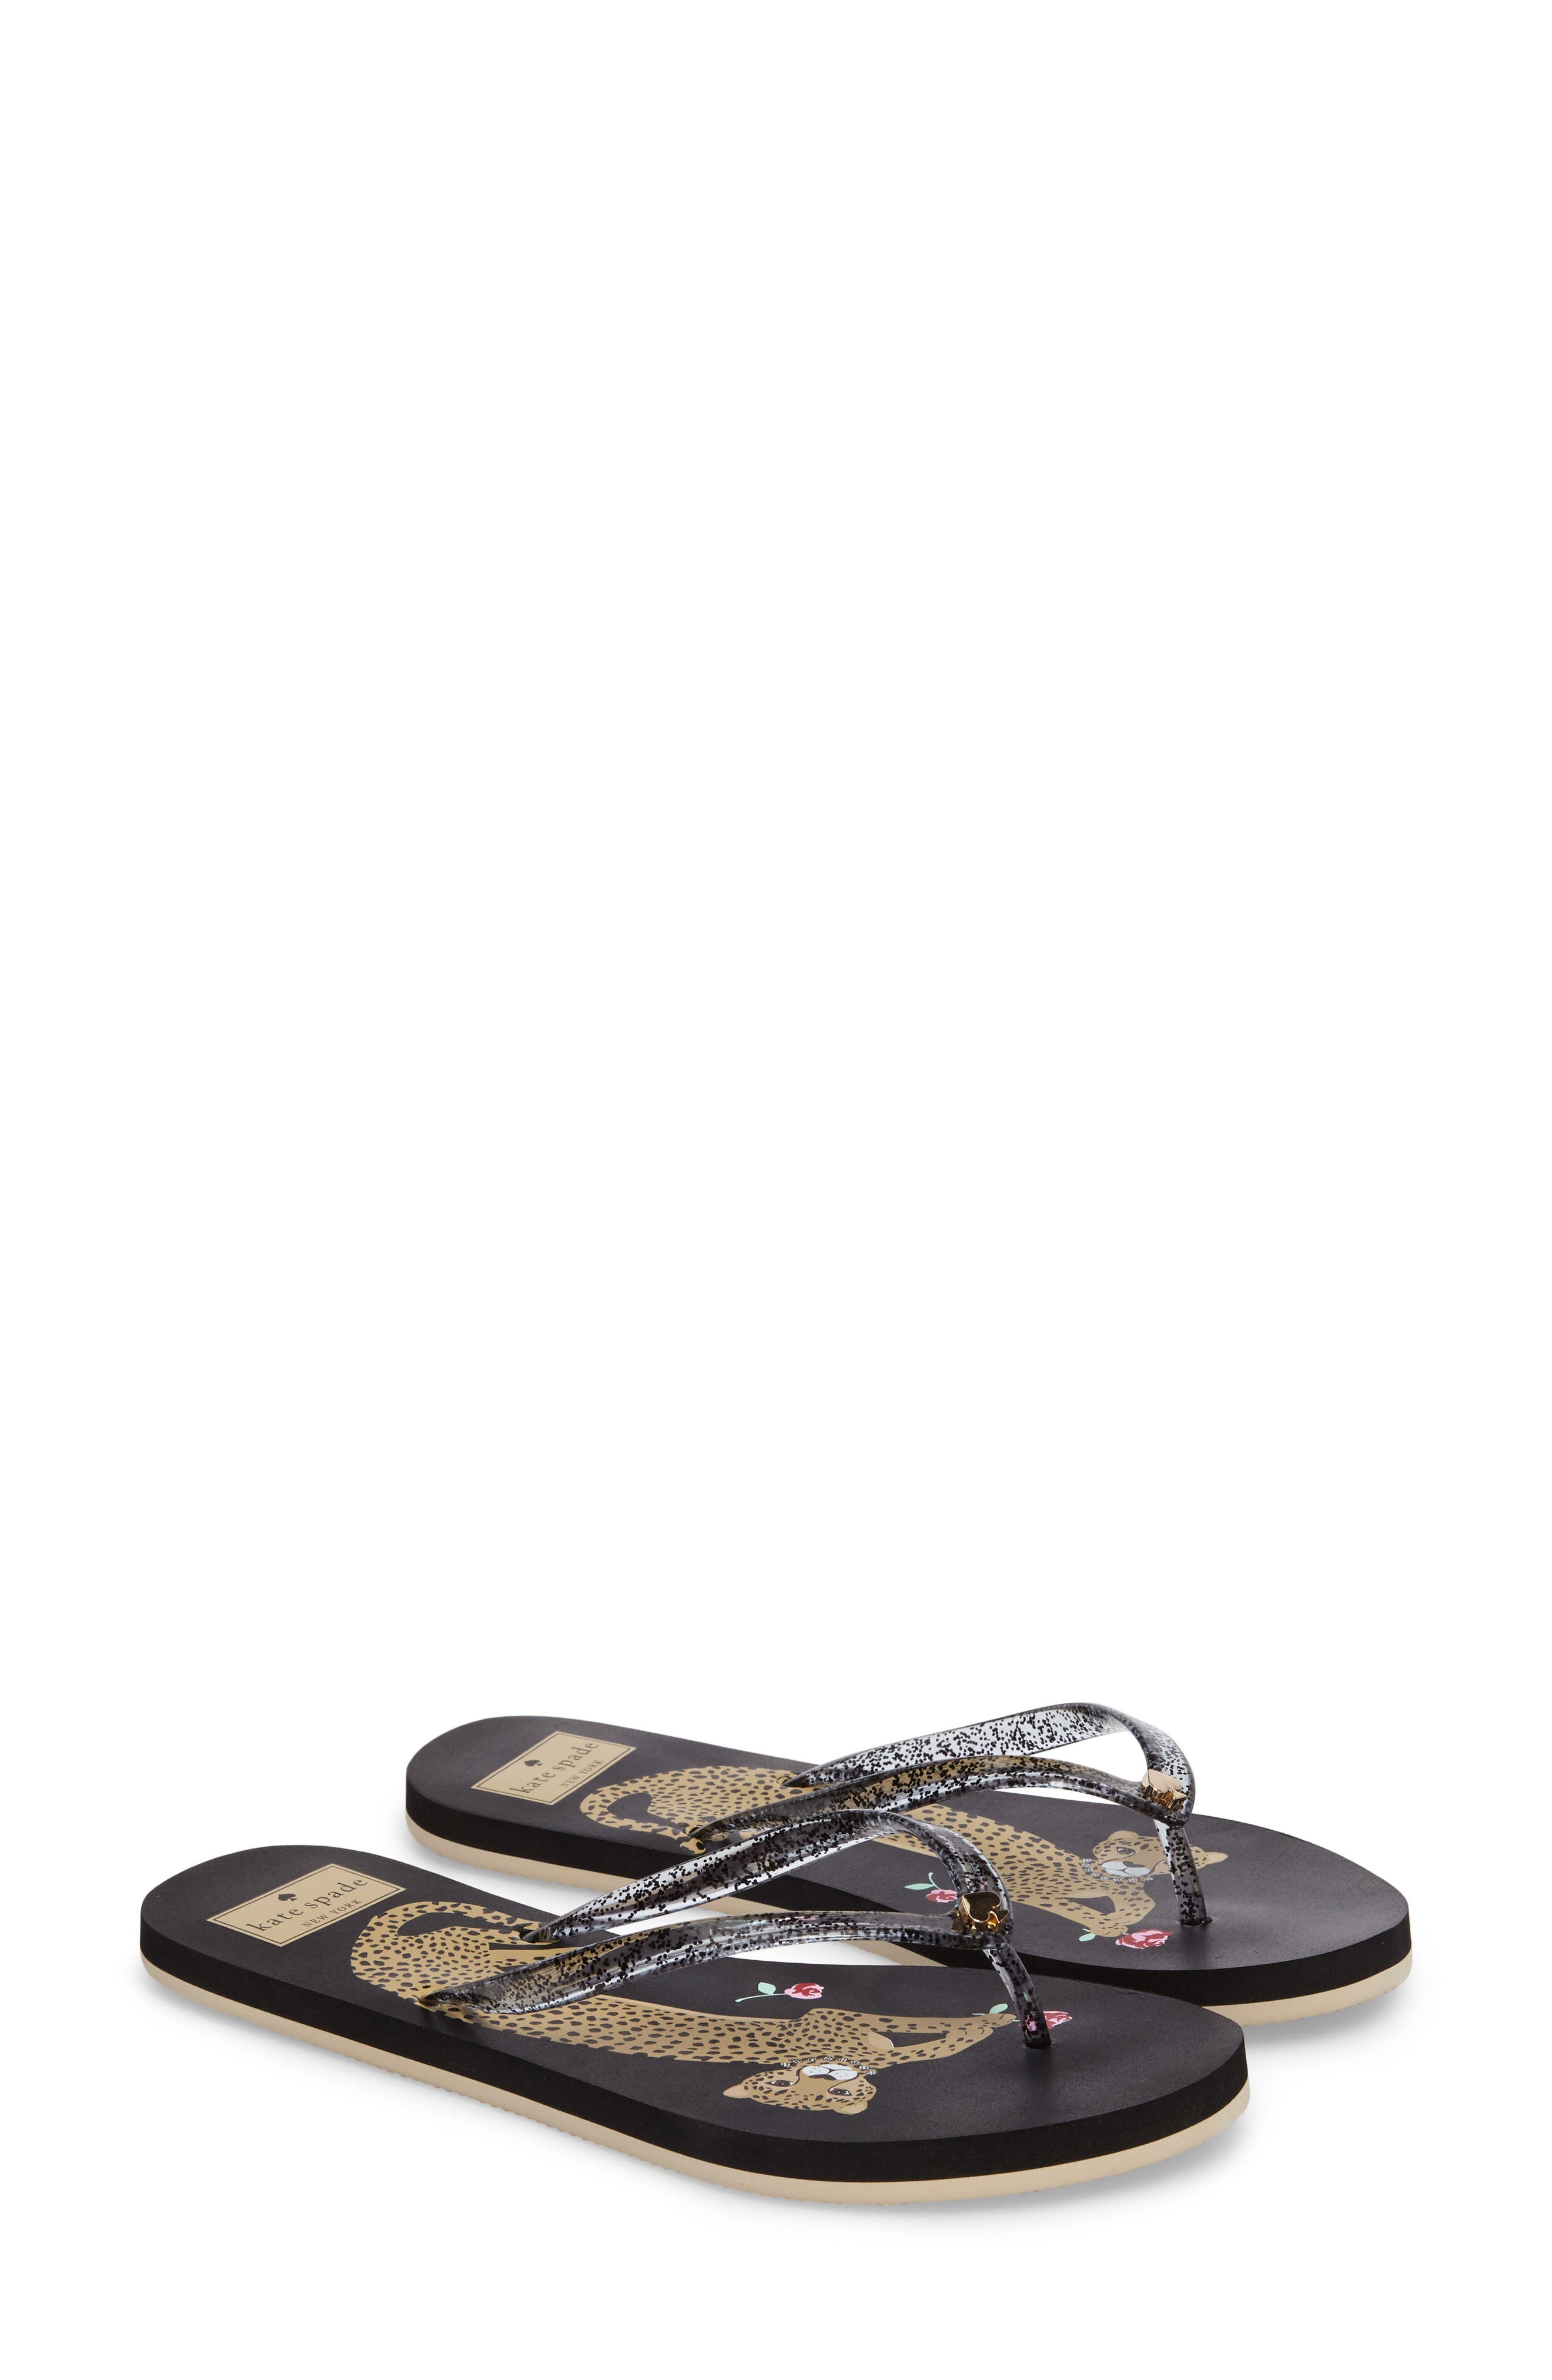 Alternate Image 1 Selected - kate spade new york 'nassau' flip flop (Women)